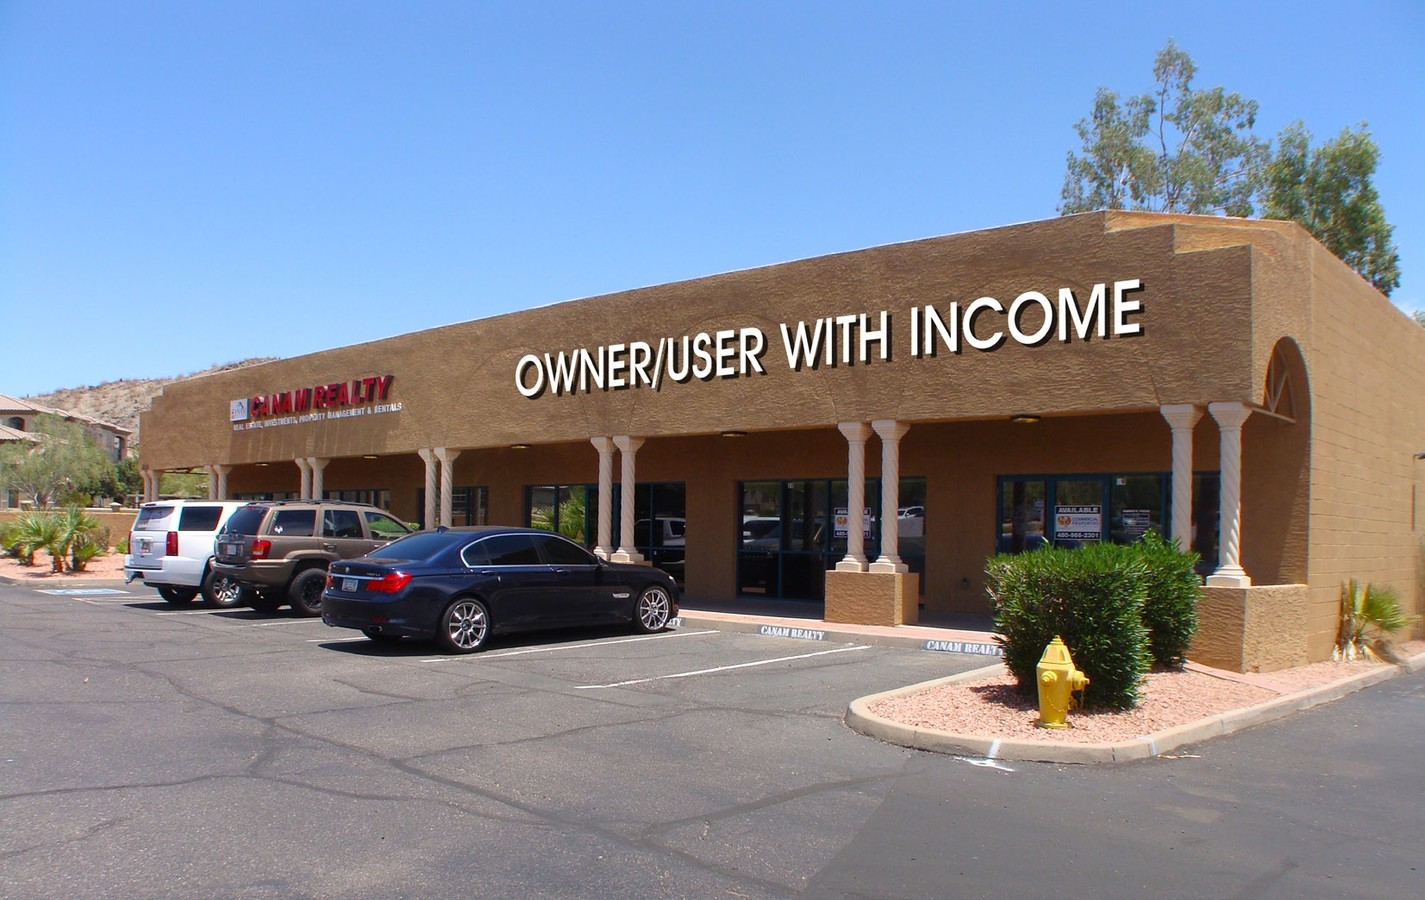 3233 E Chandler Blvd, Phoenix AZ 85048 Retail Building